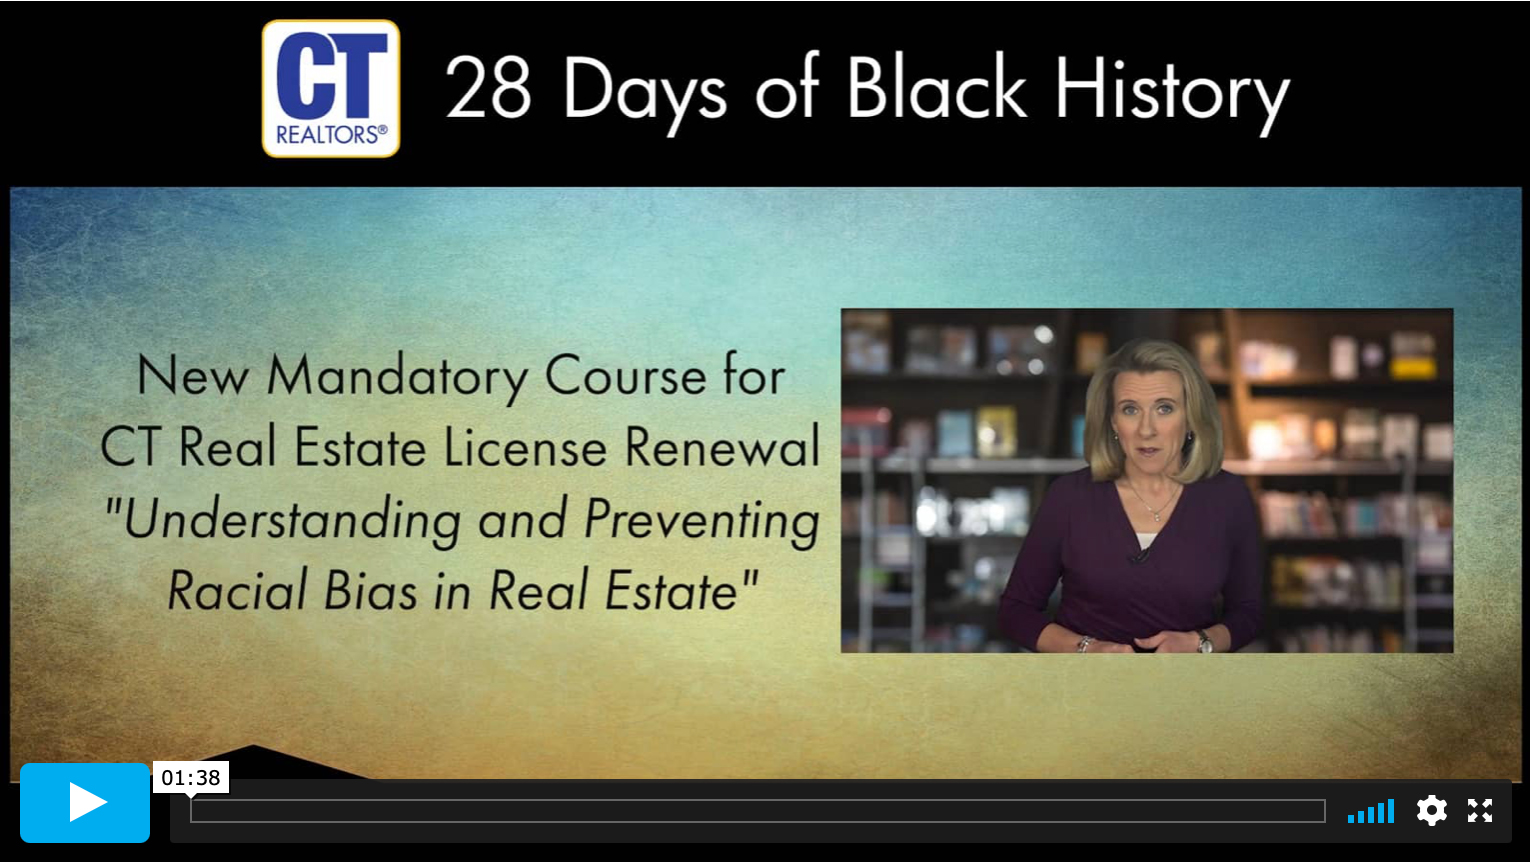 Video: Day 2 - Mandatory CE Course